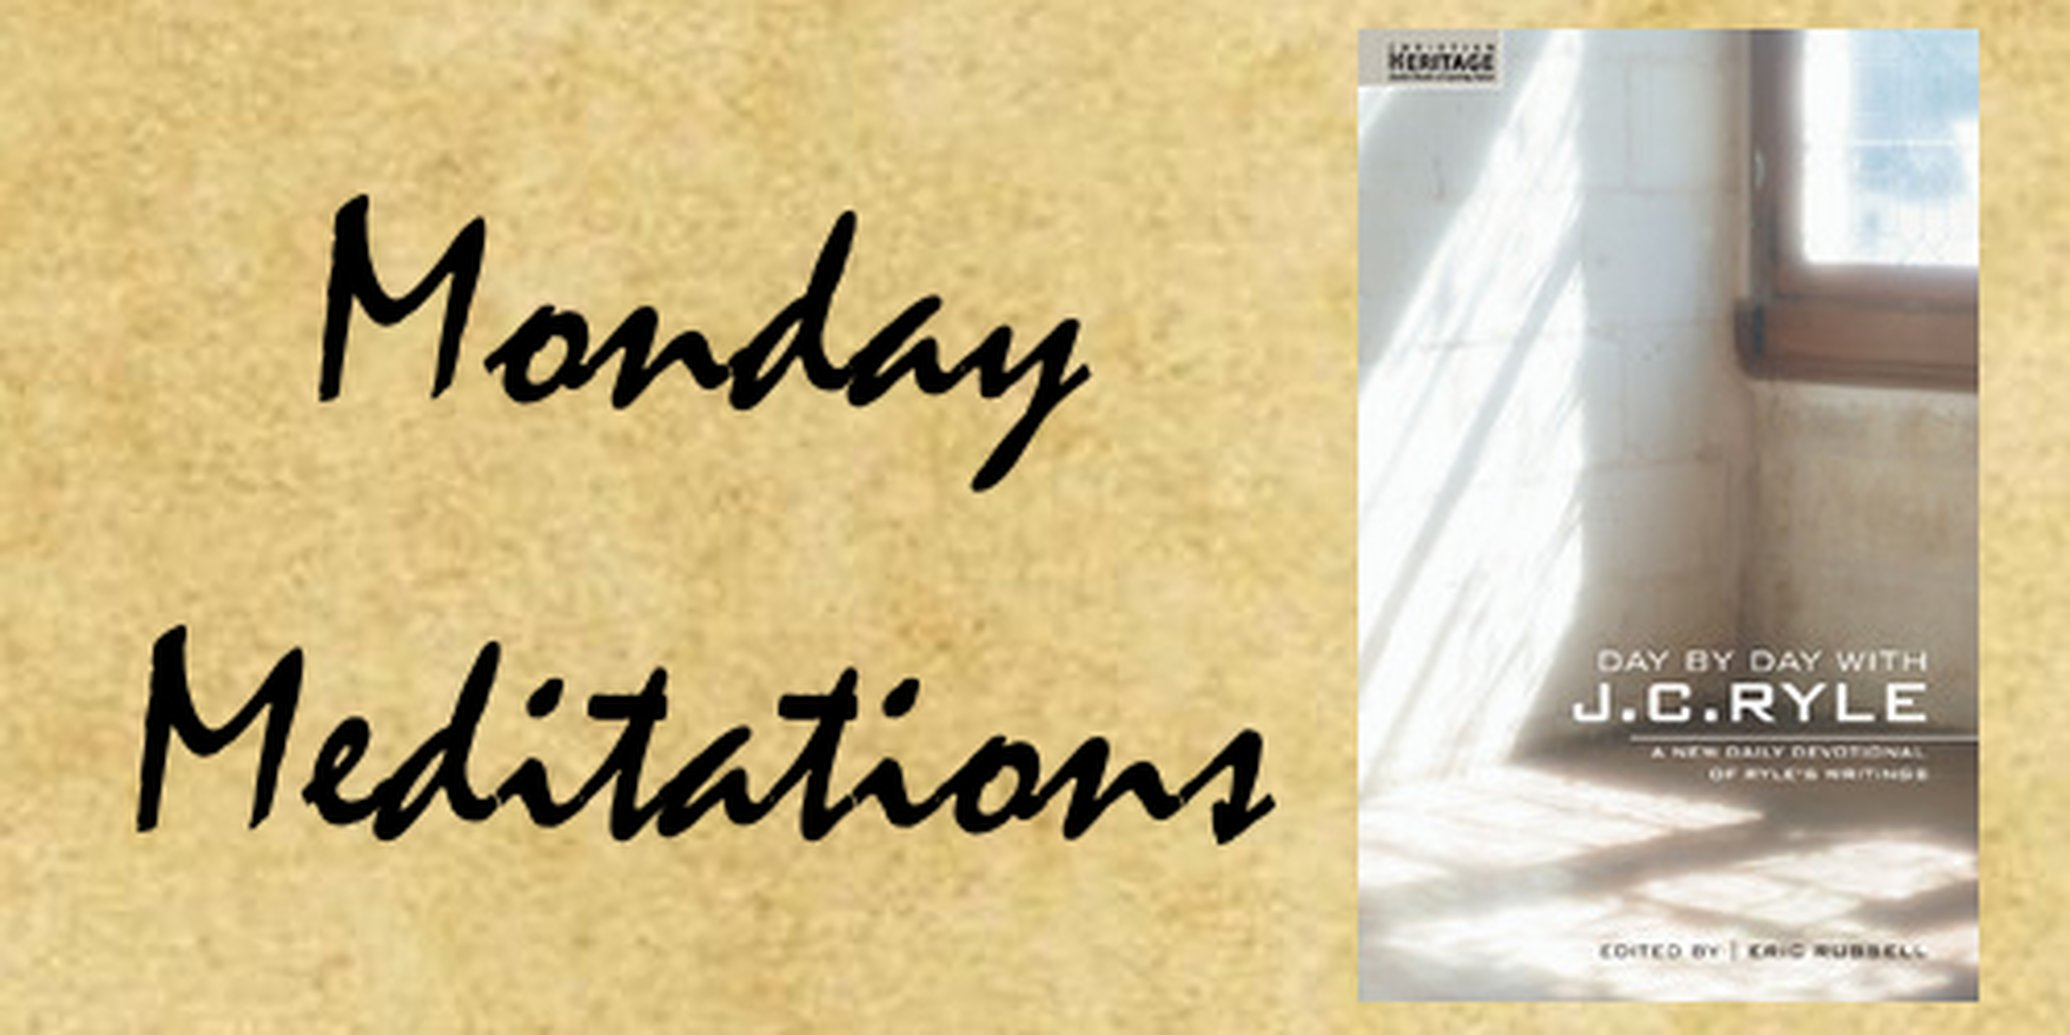 Monday Meditations - Warnings